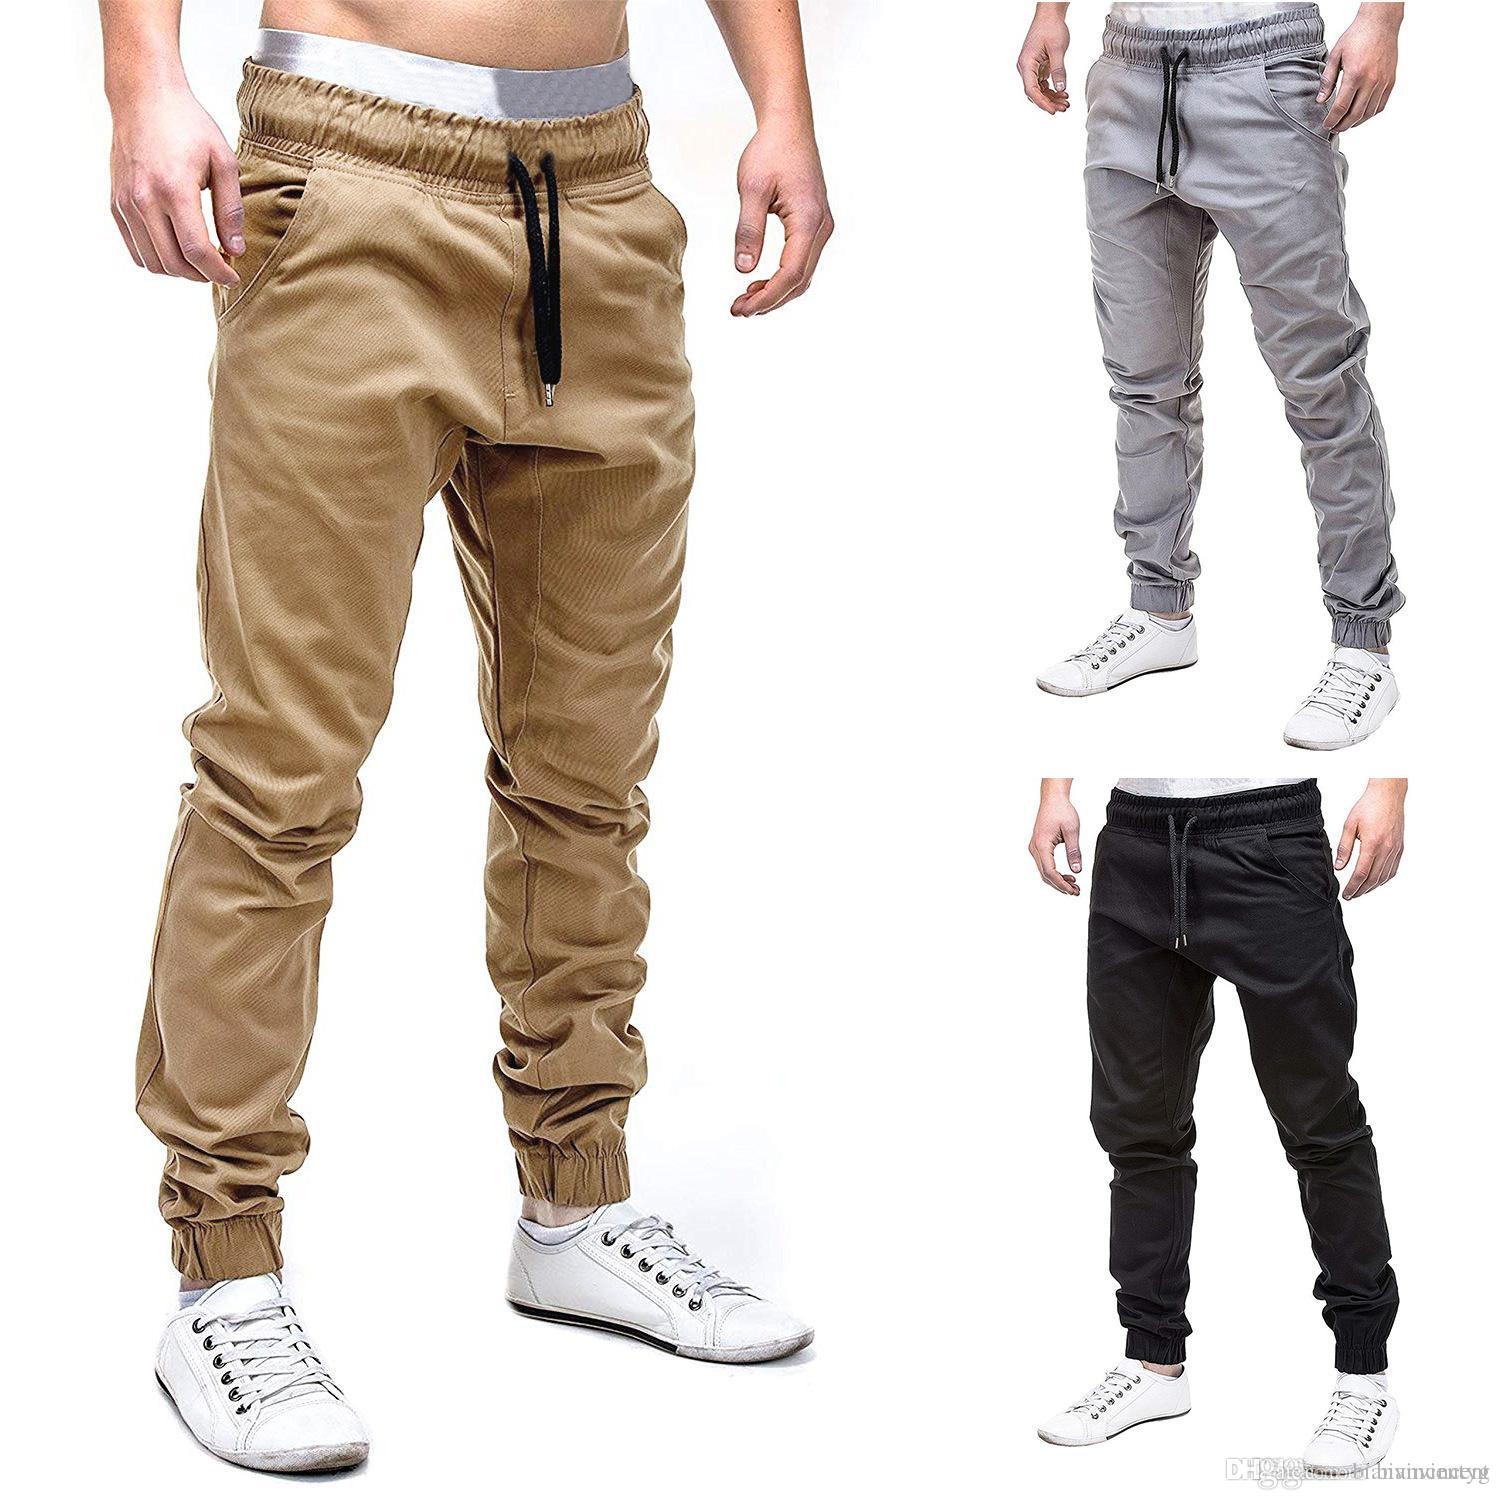 2020 2019 Men Chinos Skinny Joggers Sports Summer Long Harem Pants Casual Solid Color Trousers Hombres De Pantalones Camouflage Gym Pants Mens From Bianvincentyg 10 61 Dhgate Com